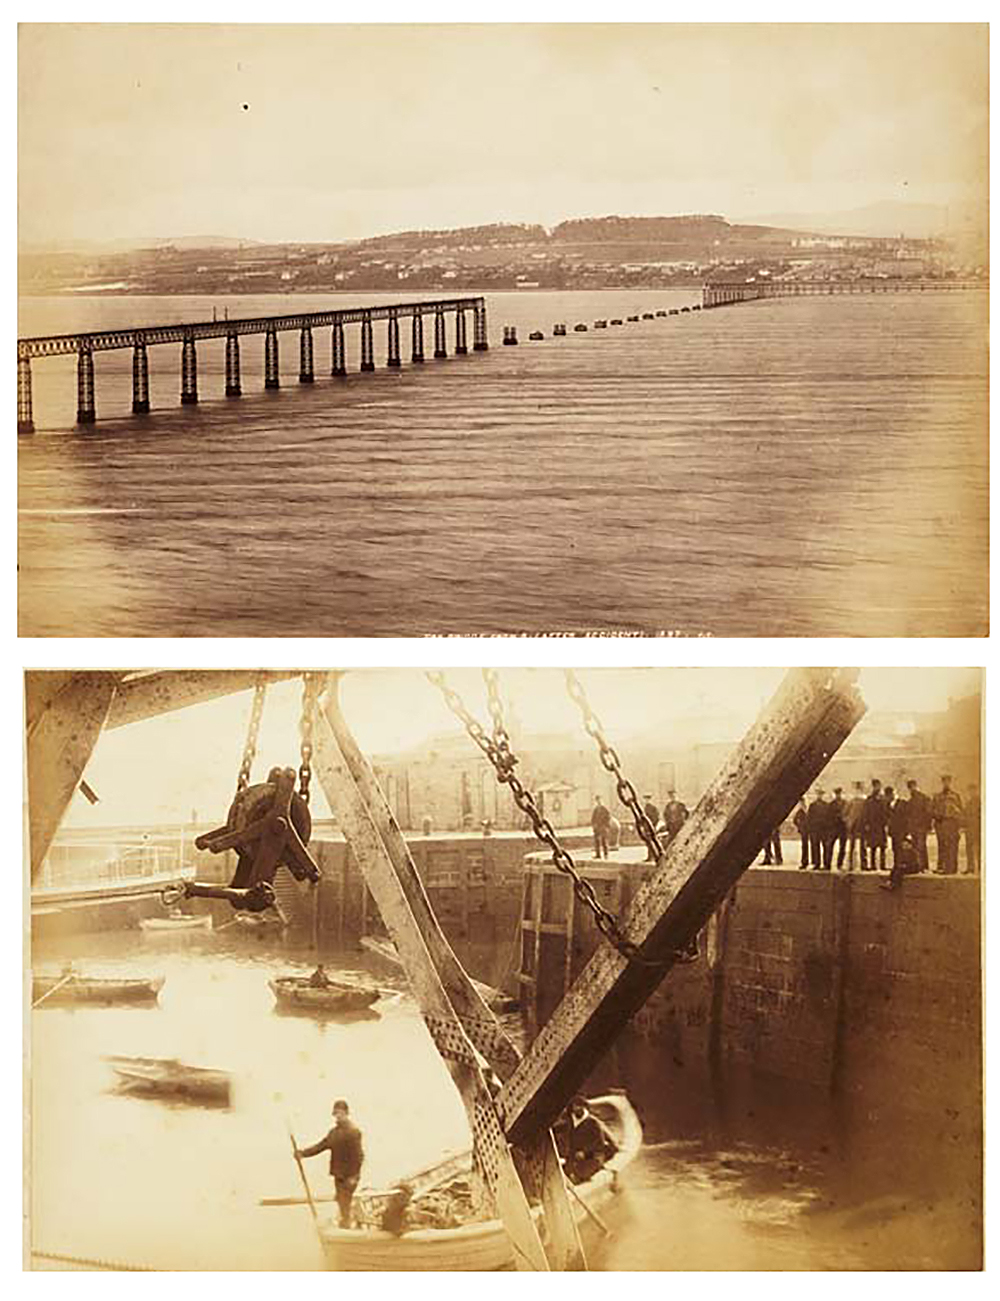 Photographs from the Tay Bridge inquiry, c. 1886. Commissioned by John Trayner. National Library of Scotland (CC BY 4.0).